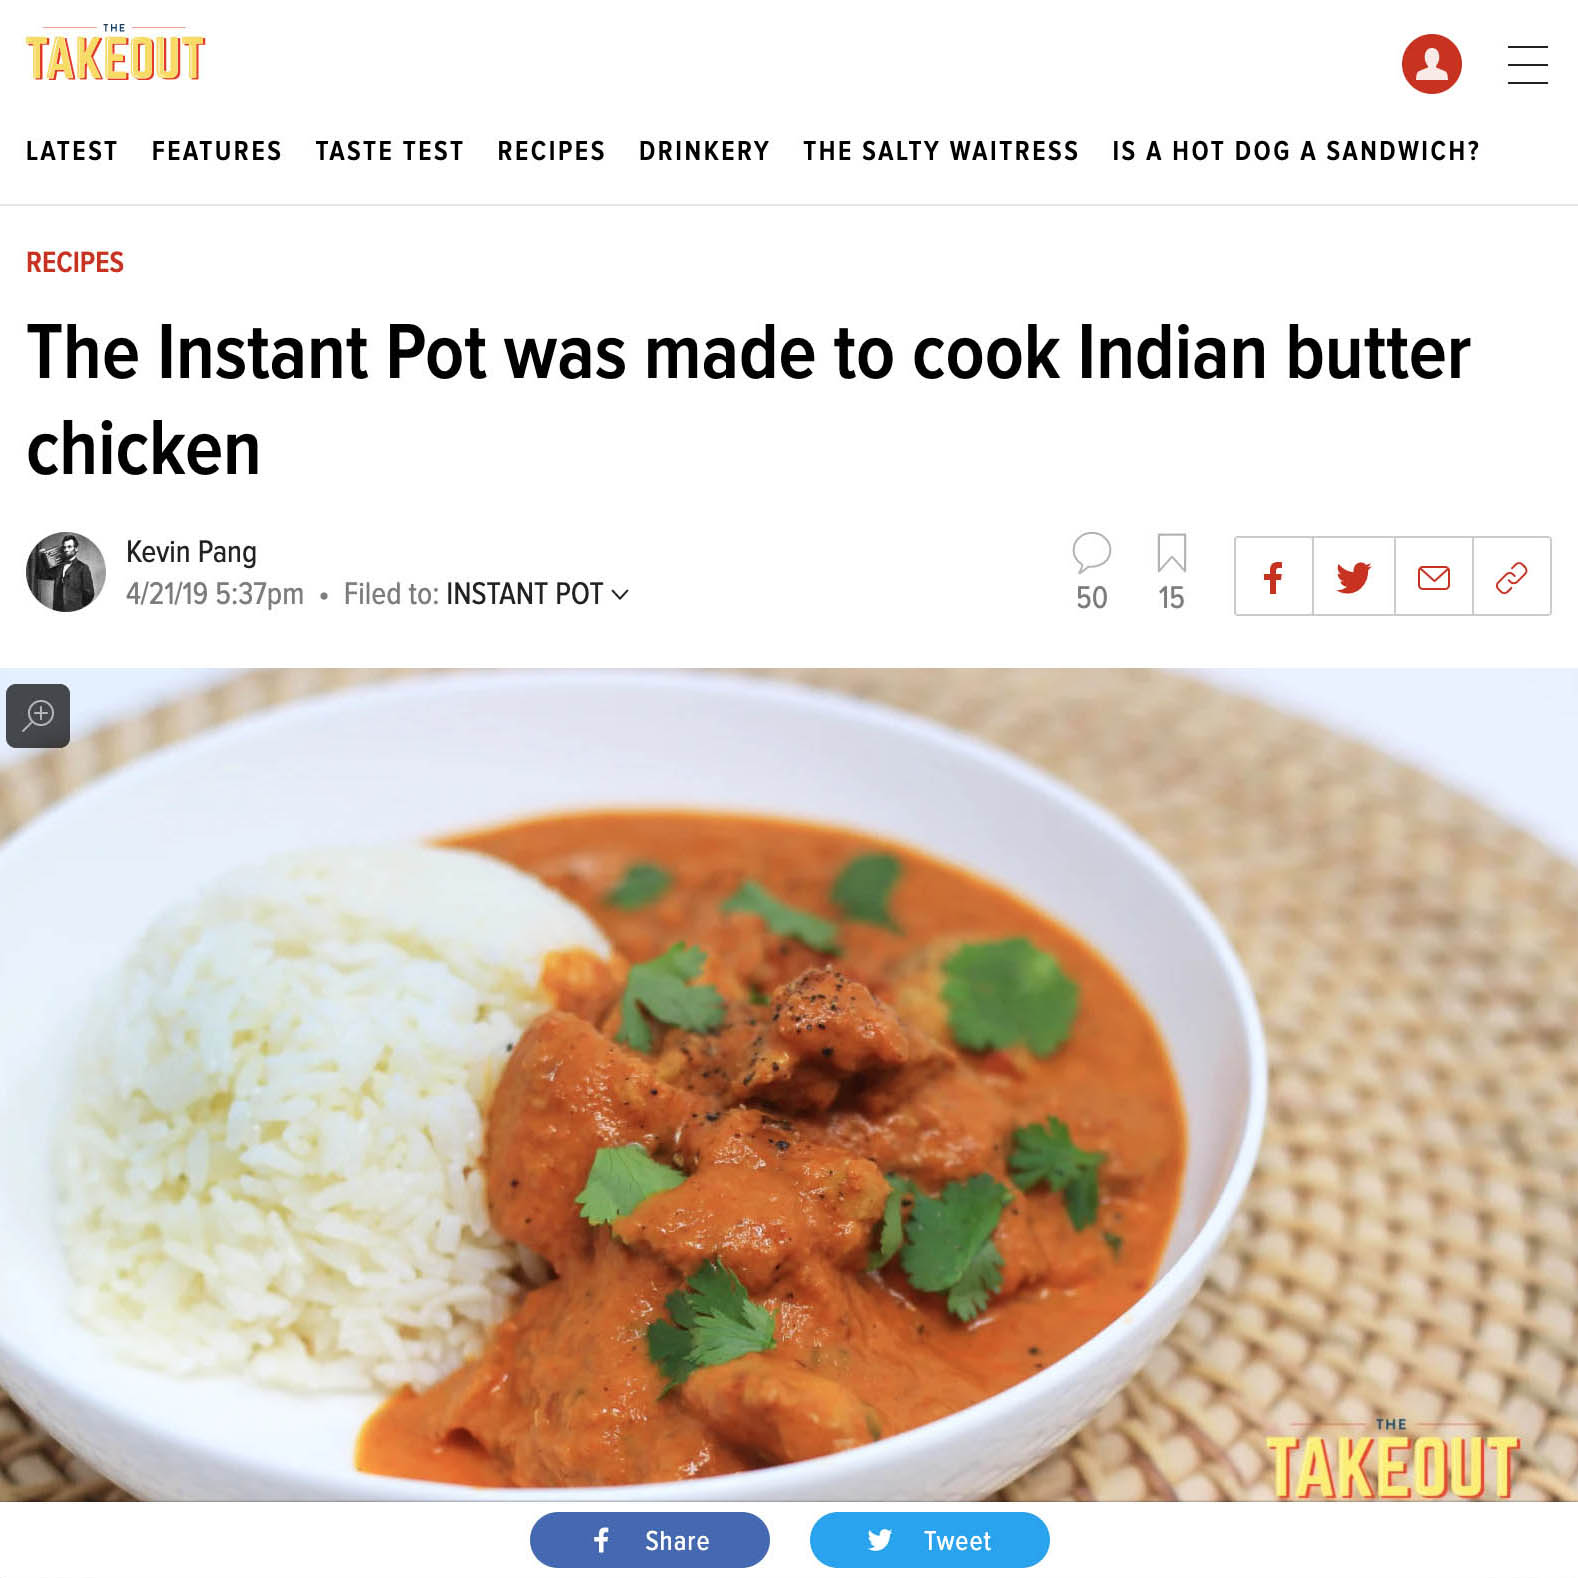 takeout-instant-pot-indian-buttern-chicken.jpg